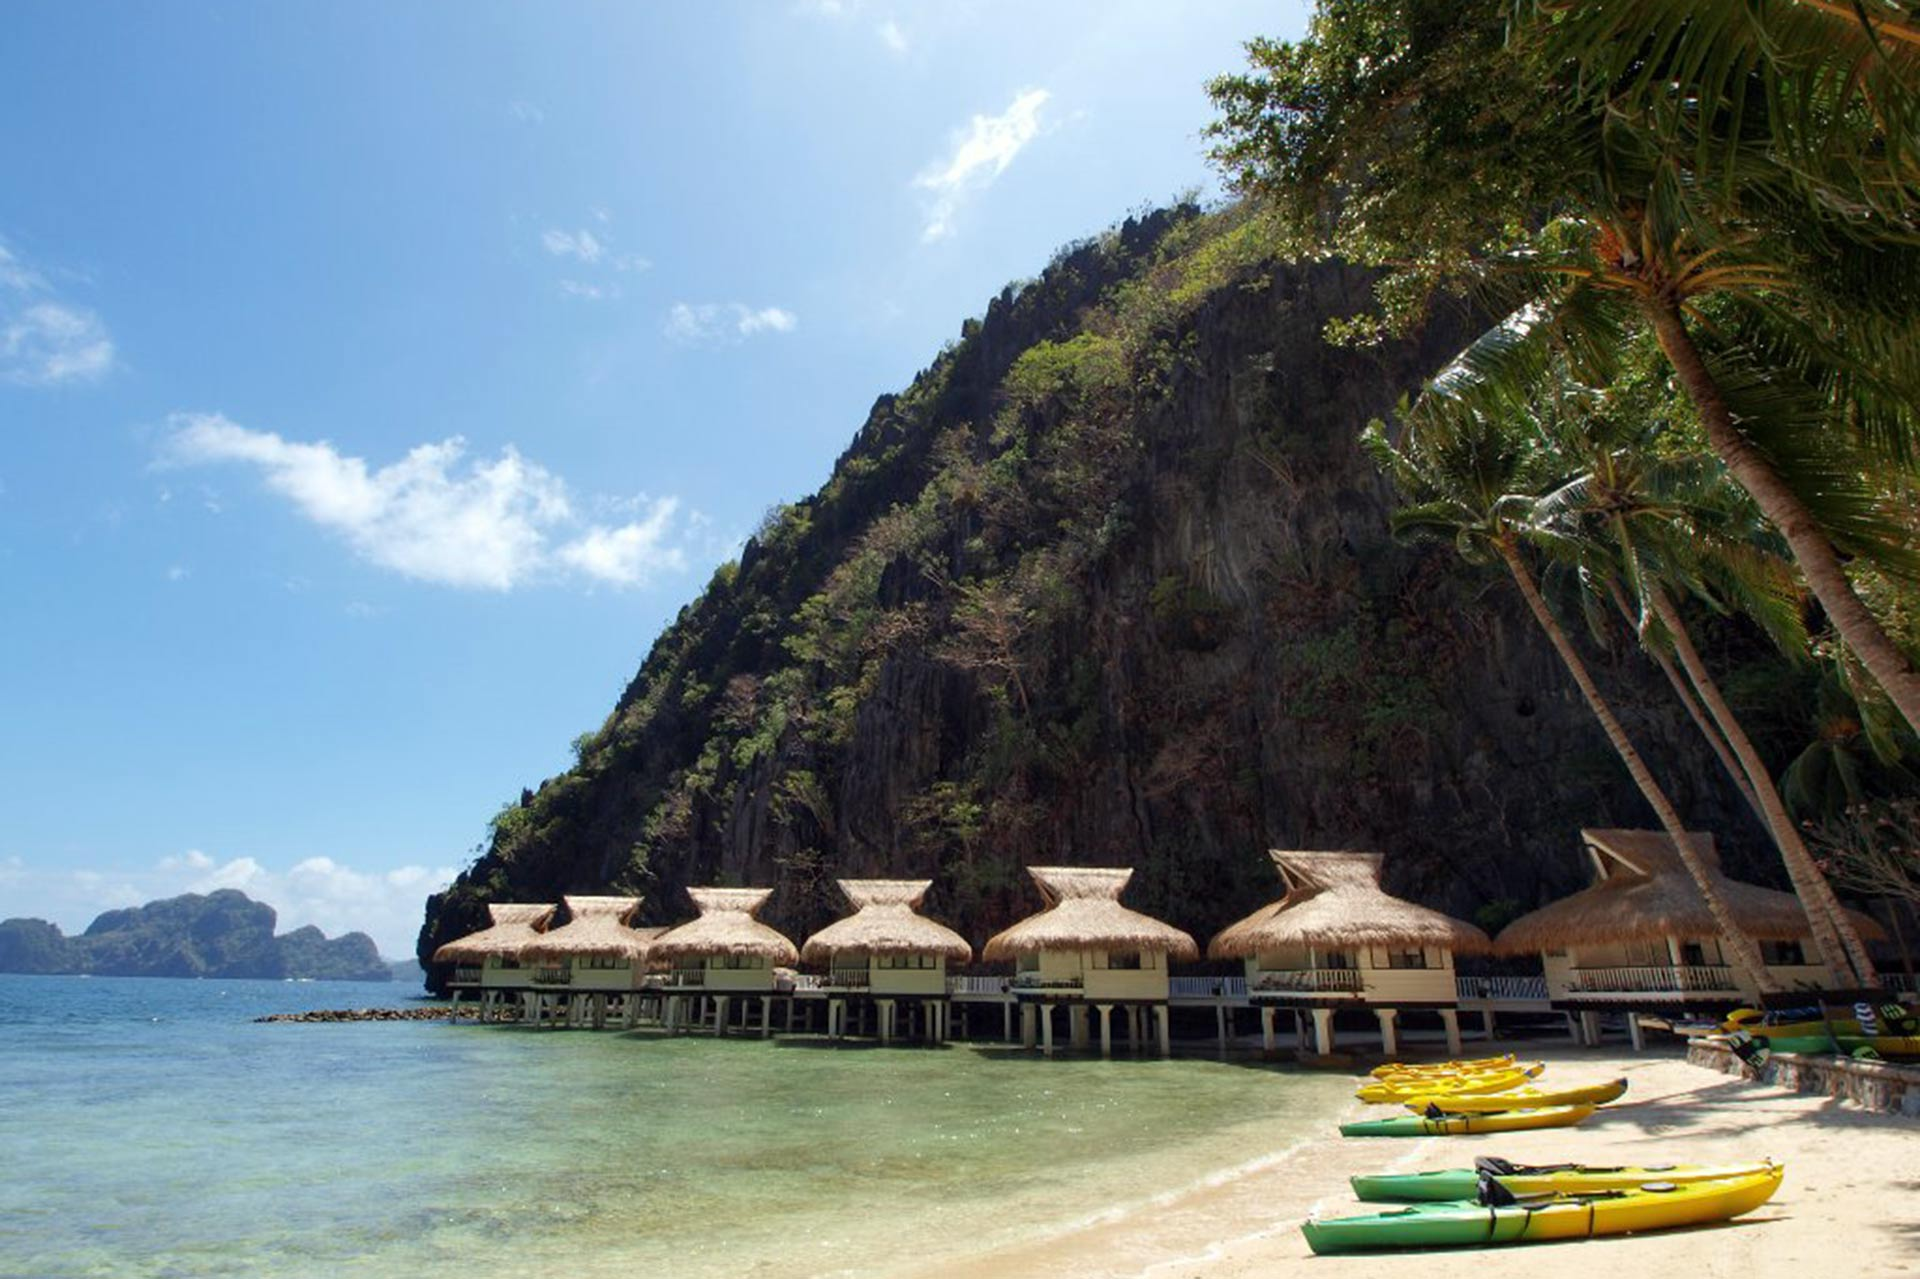 El Nido Miniloc Island in the Philippines; Courtesy of El Nido Miniloc Island